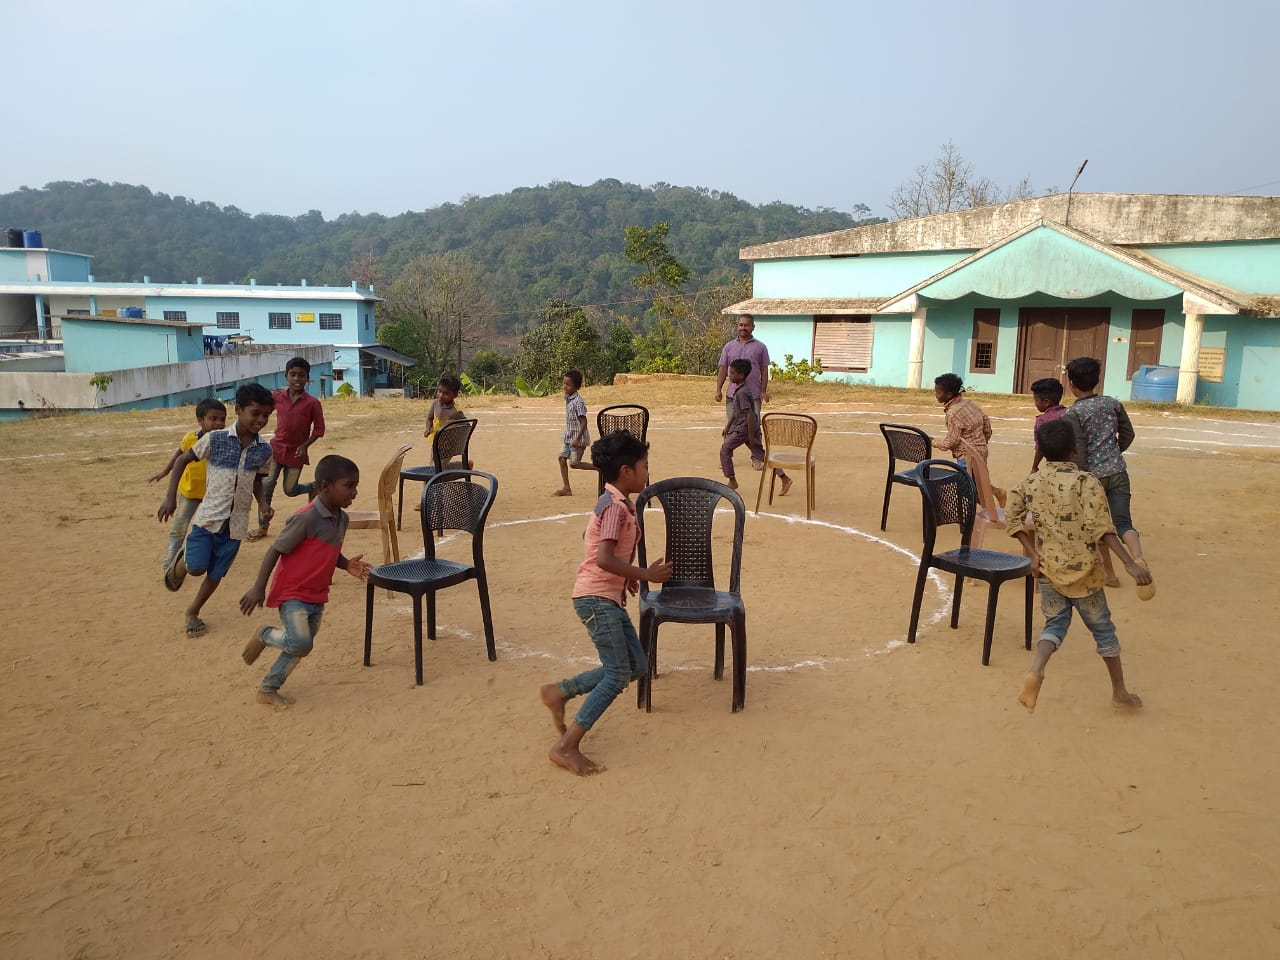 2020-07-05-WayanadGirijanaSevaTrust_Supporttheeducationalrequirementsatribalchild_2.jpg